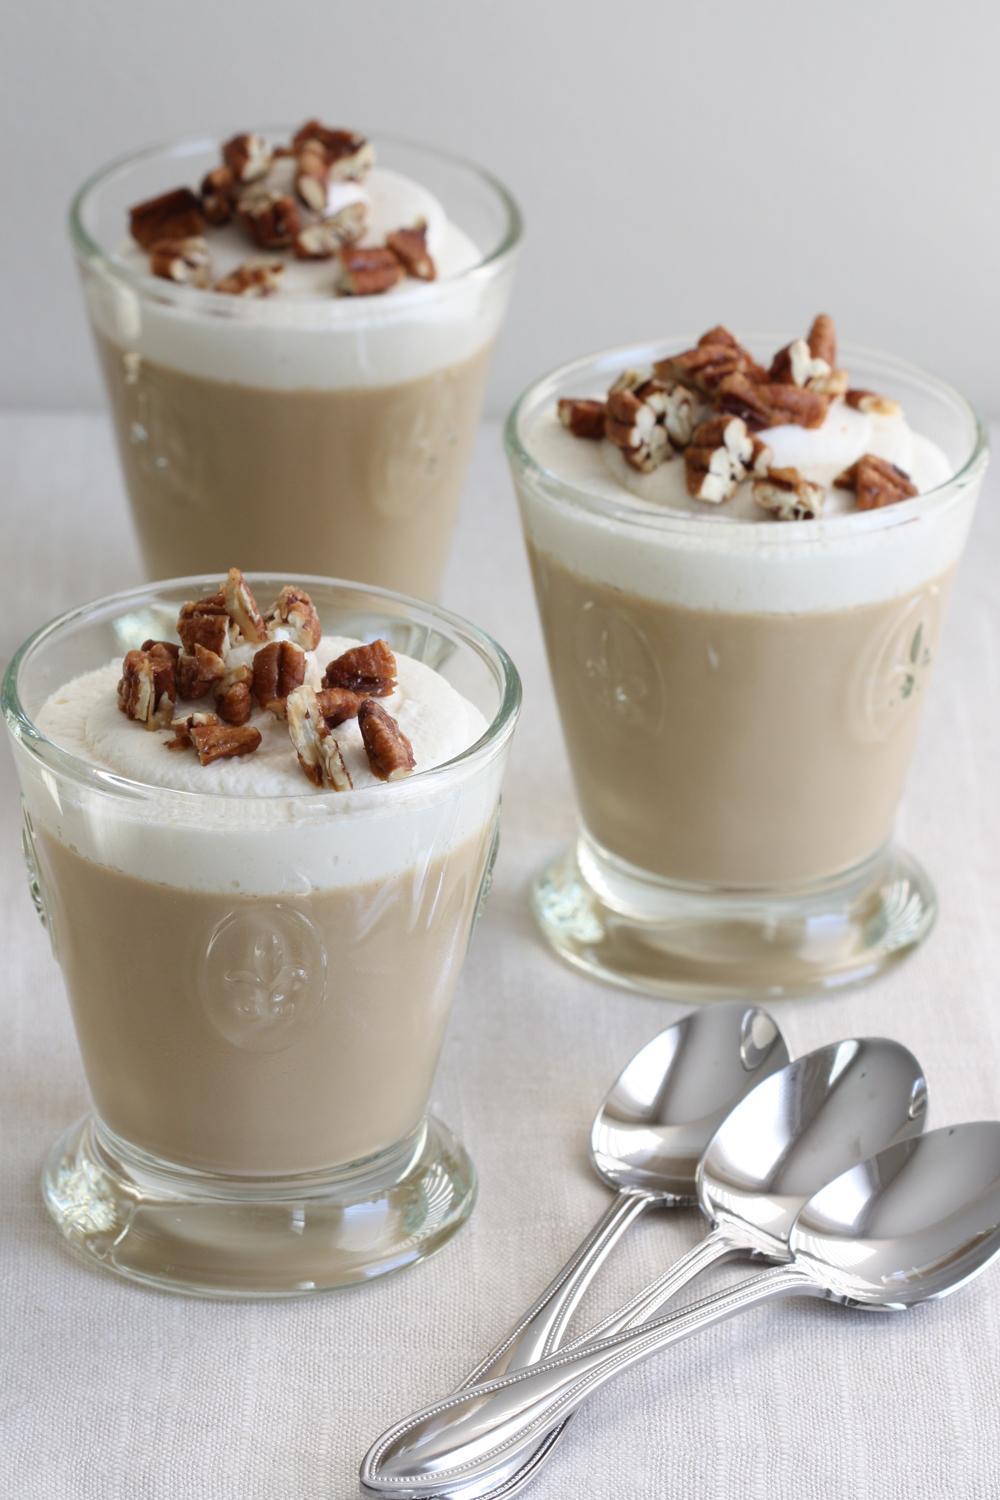 ... one of our all-time favorite desserts, Bourbon Butterscotch Pudding